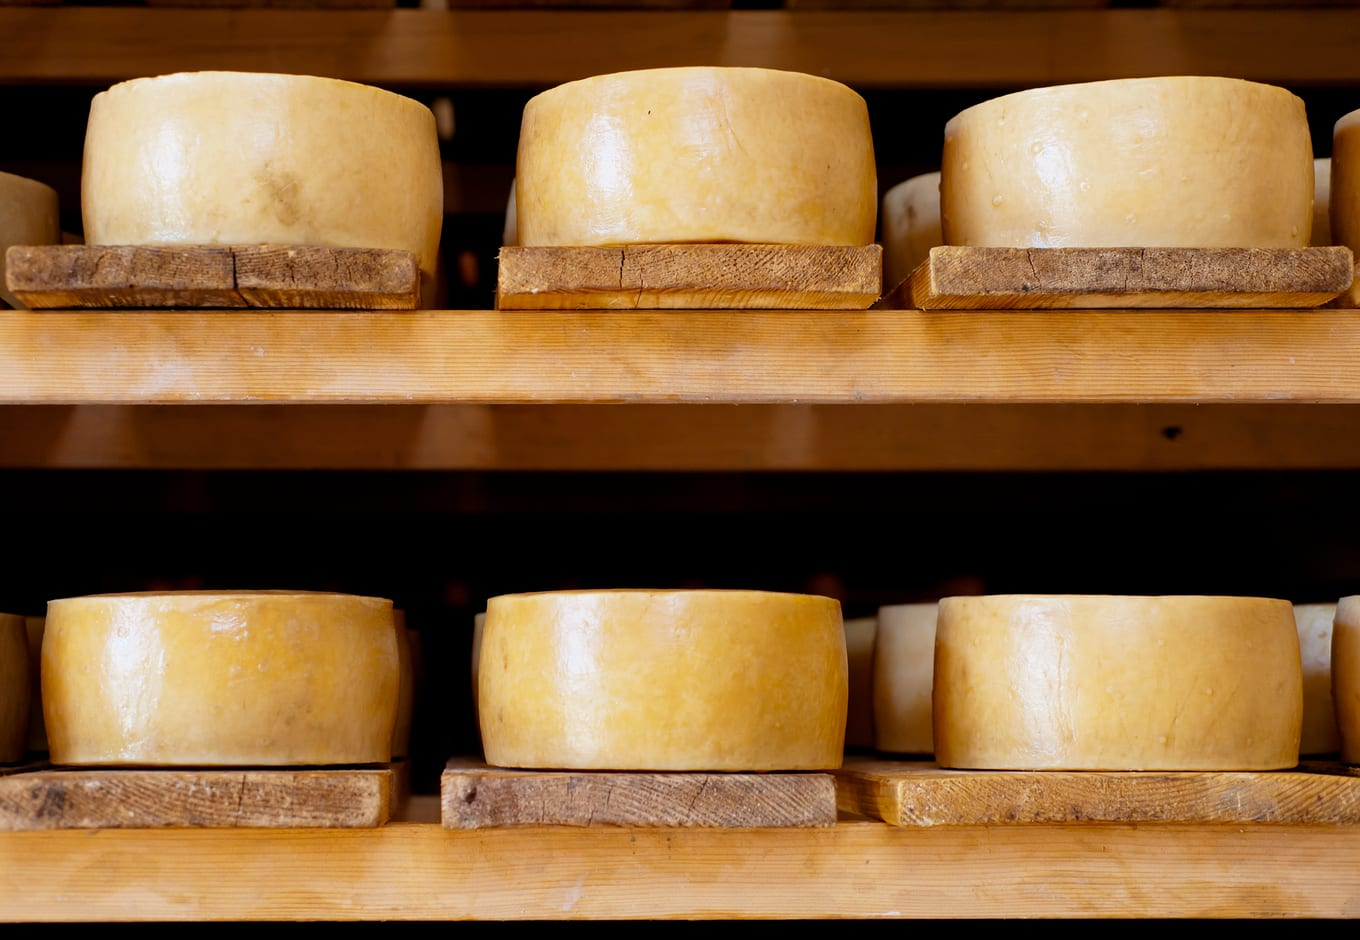 Croatian Pag cheeses on the shelves.